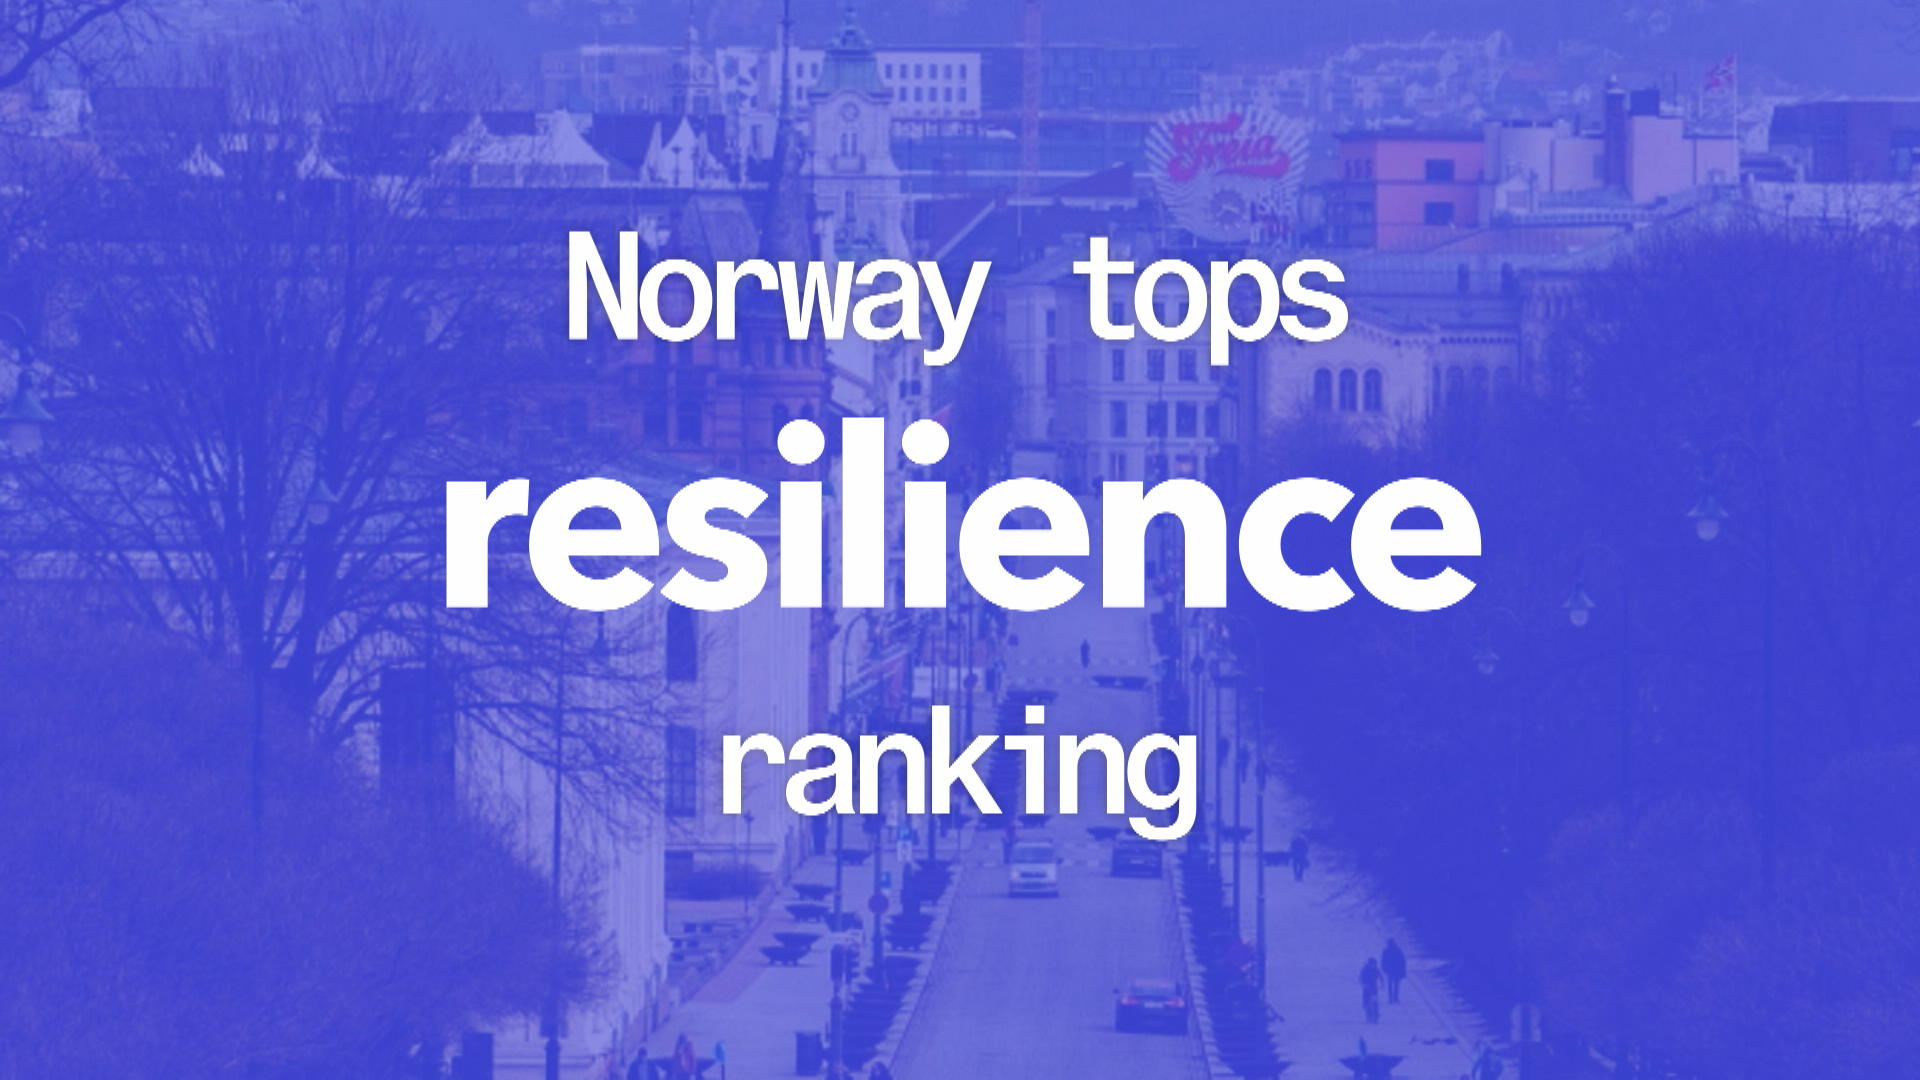 Norway Tops Covid Resilience Ranking as Delta Variant Surges